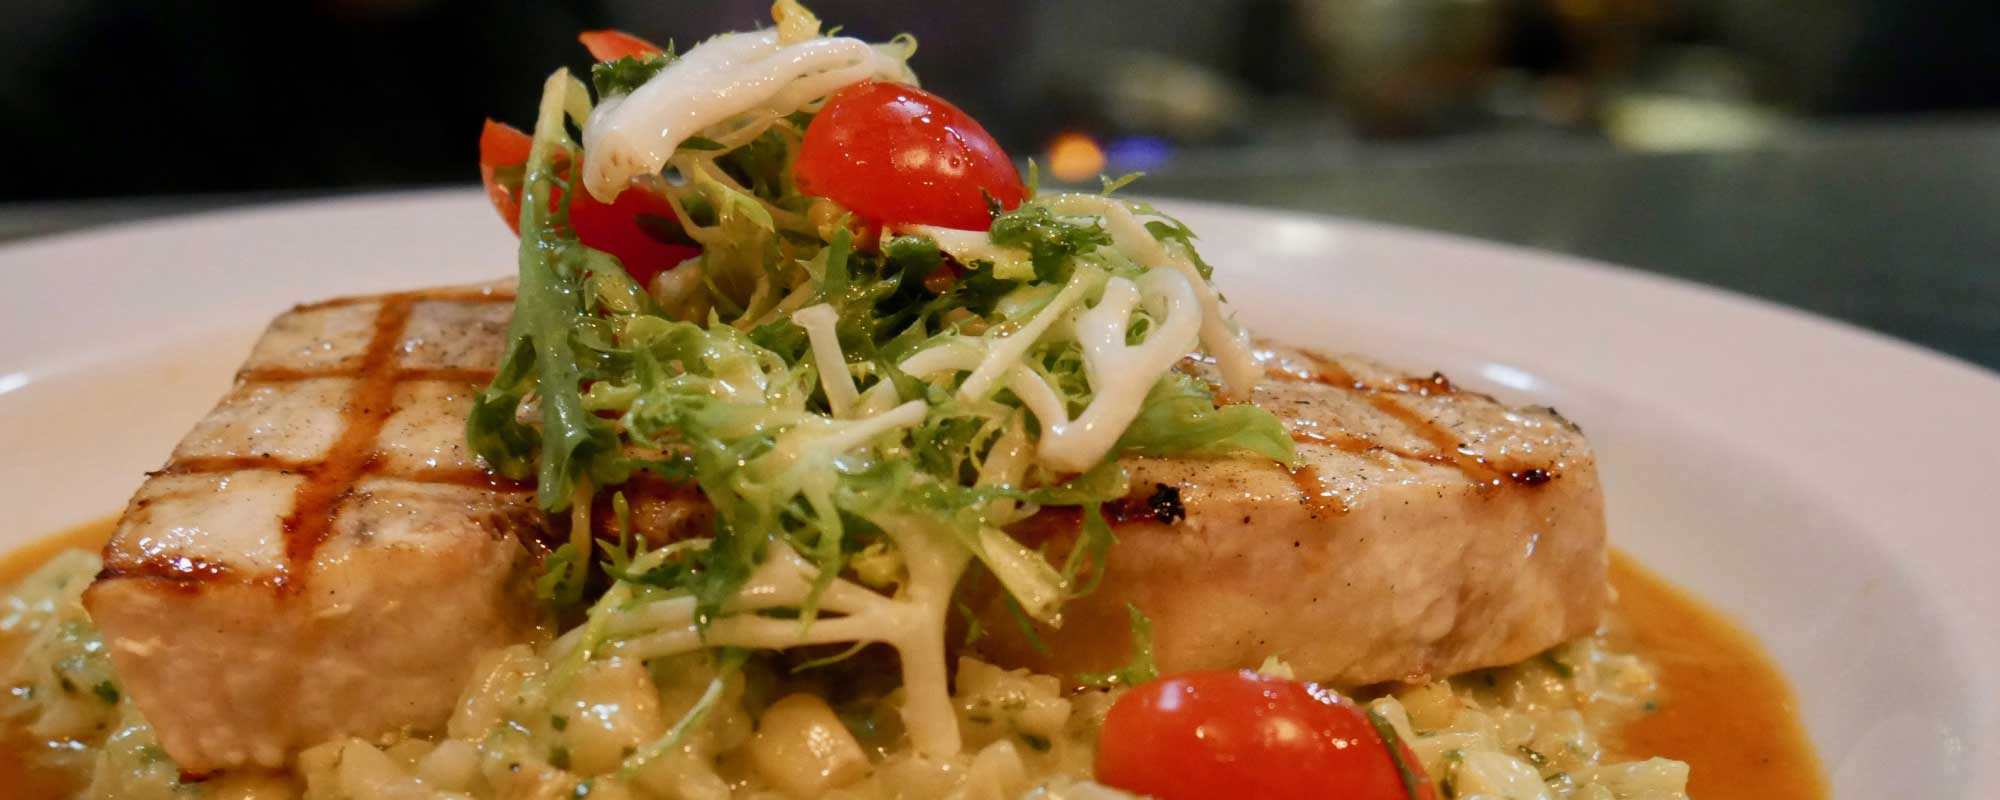 Italian Food Napa Restaurants